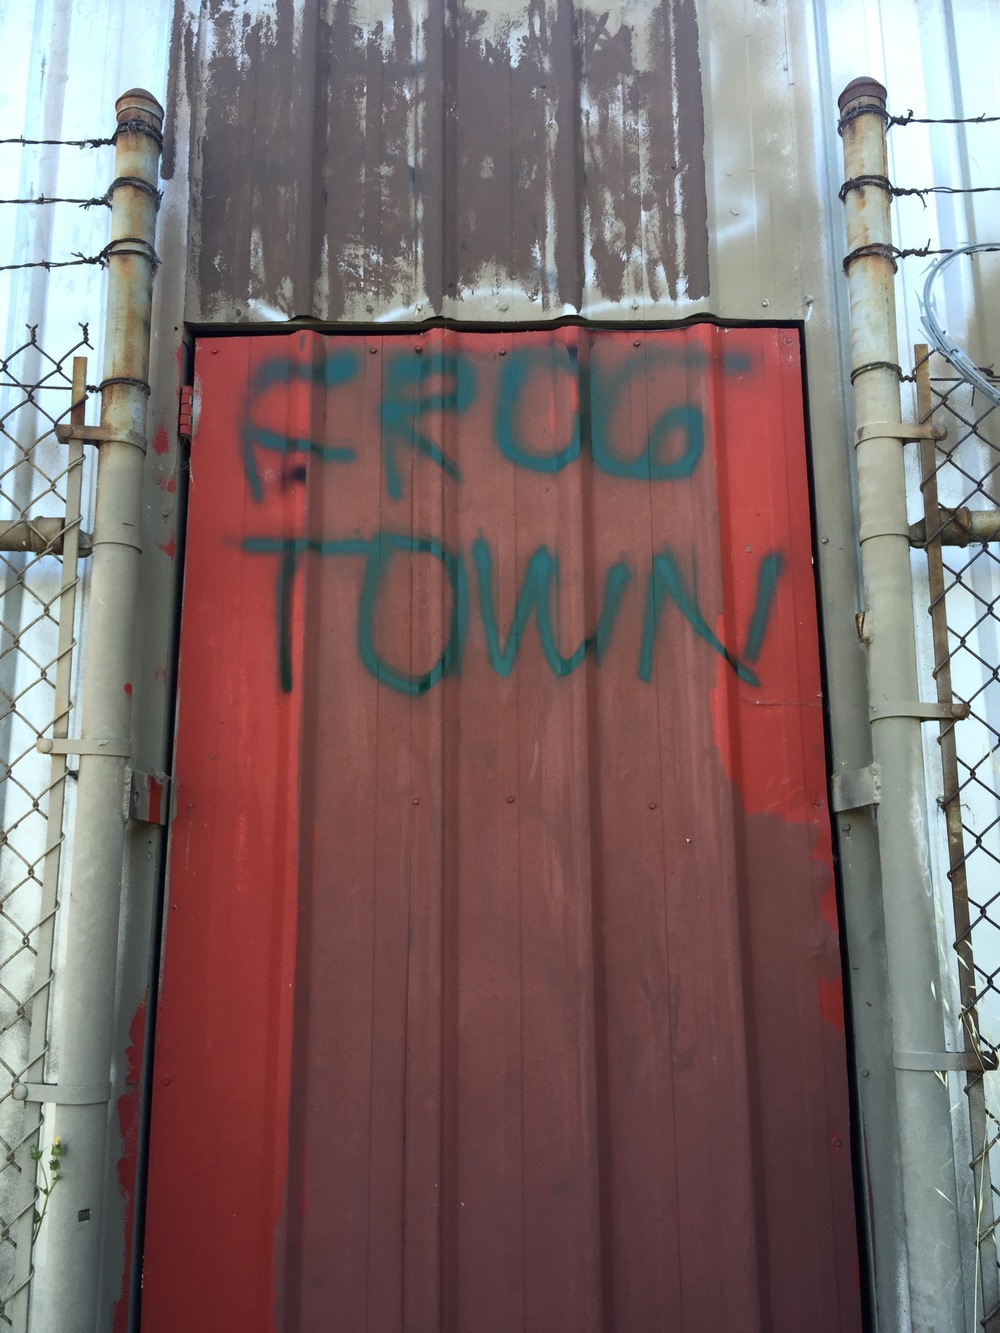 See you next time Frogtown!